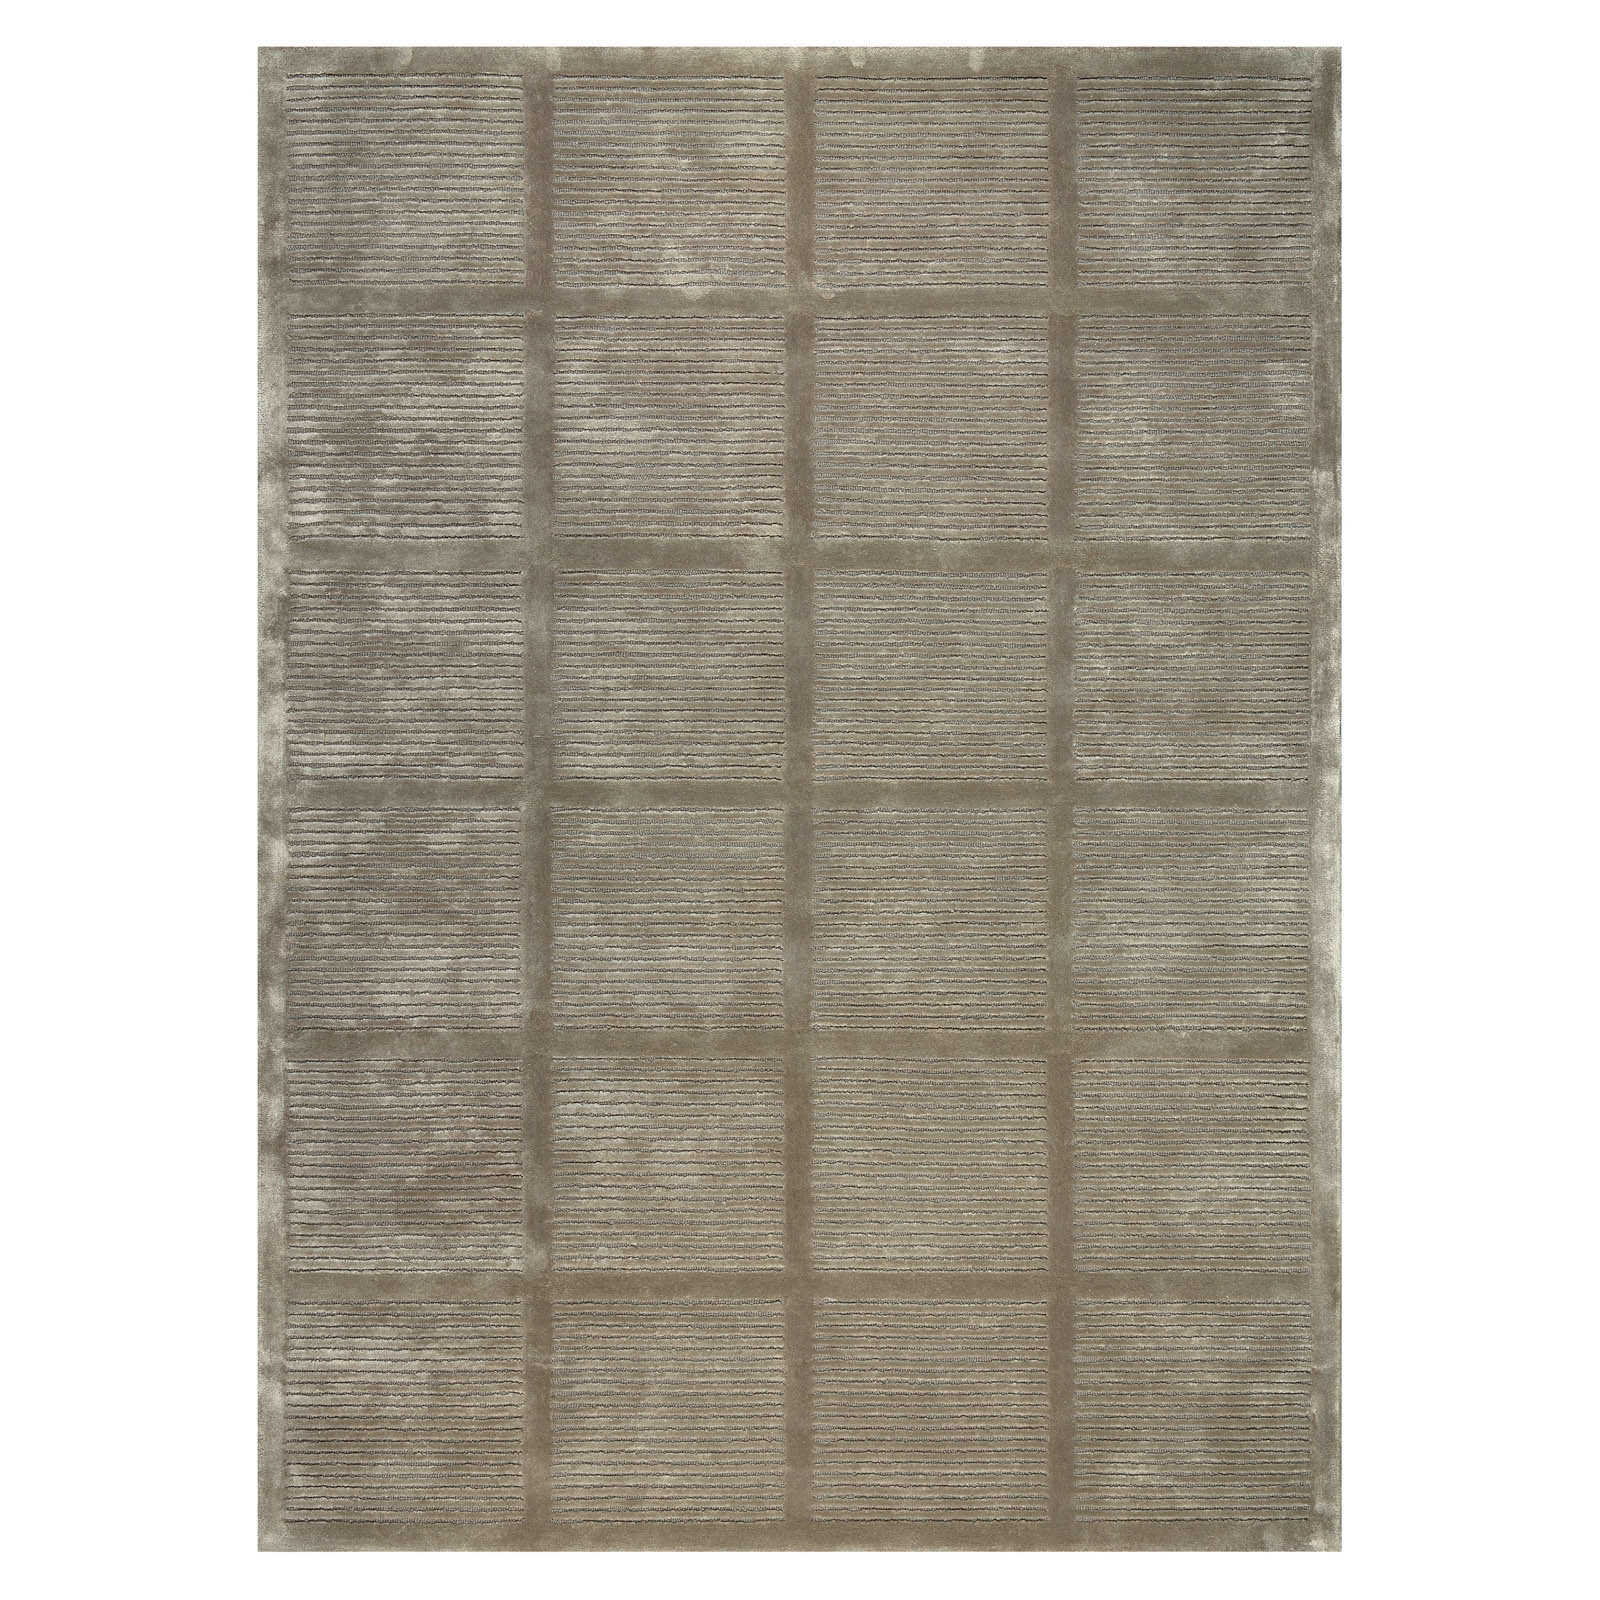 Uni Reflect Rugs 208 001 600 in Brown by Ligne Pure